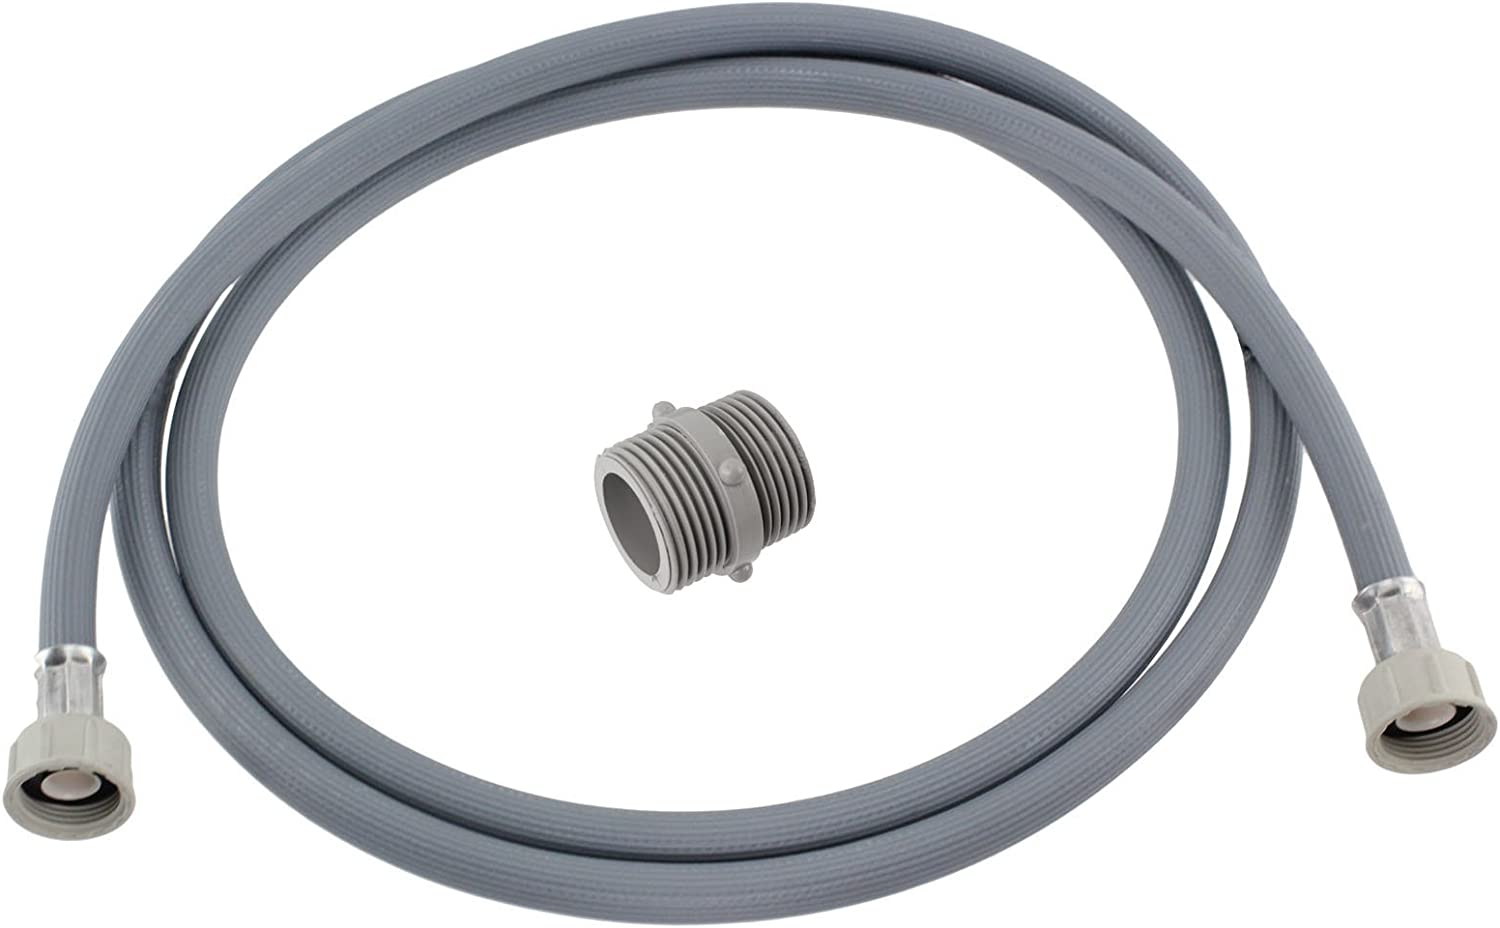 Straight End Fill Hose Inlet Extension For Essentials Washing Machine 2.5m